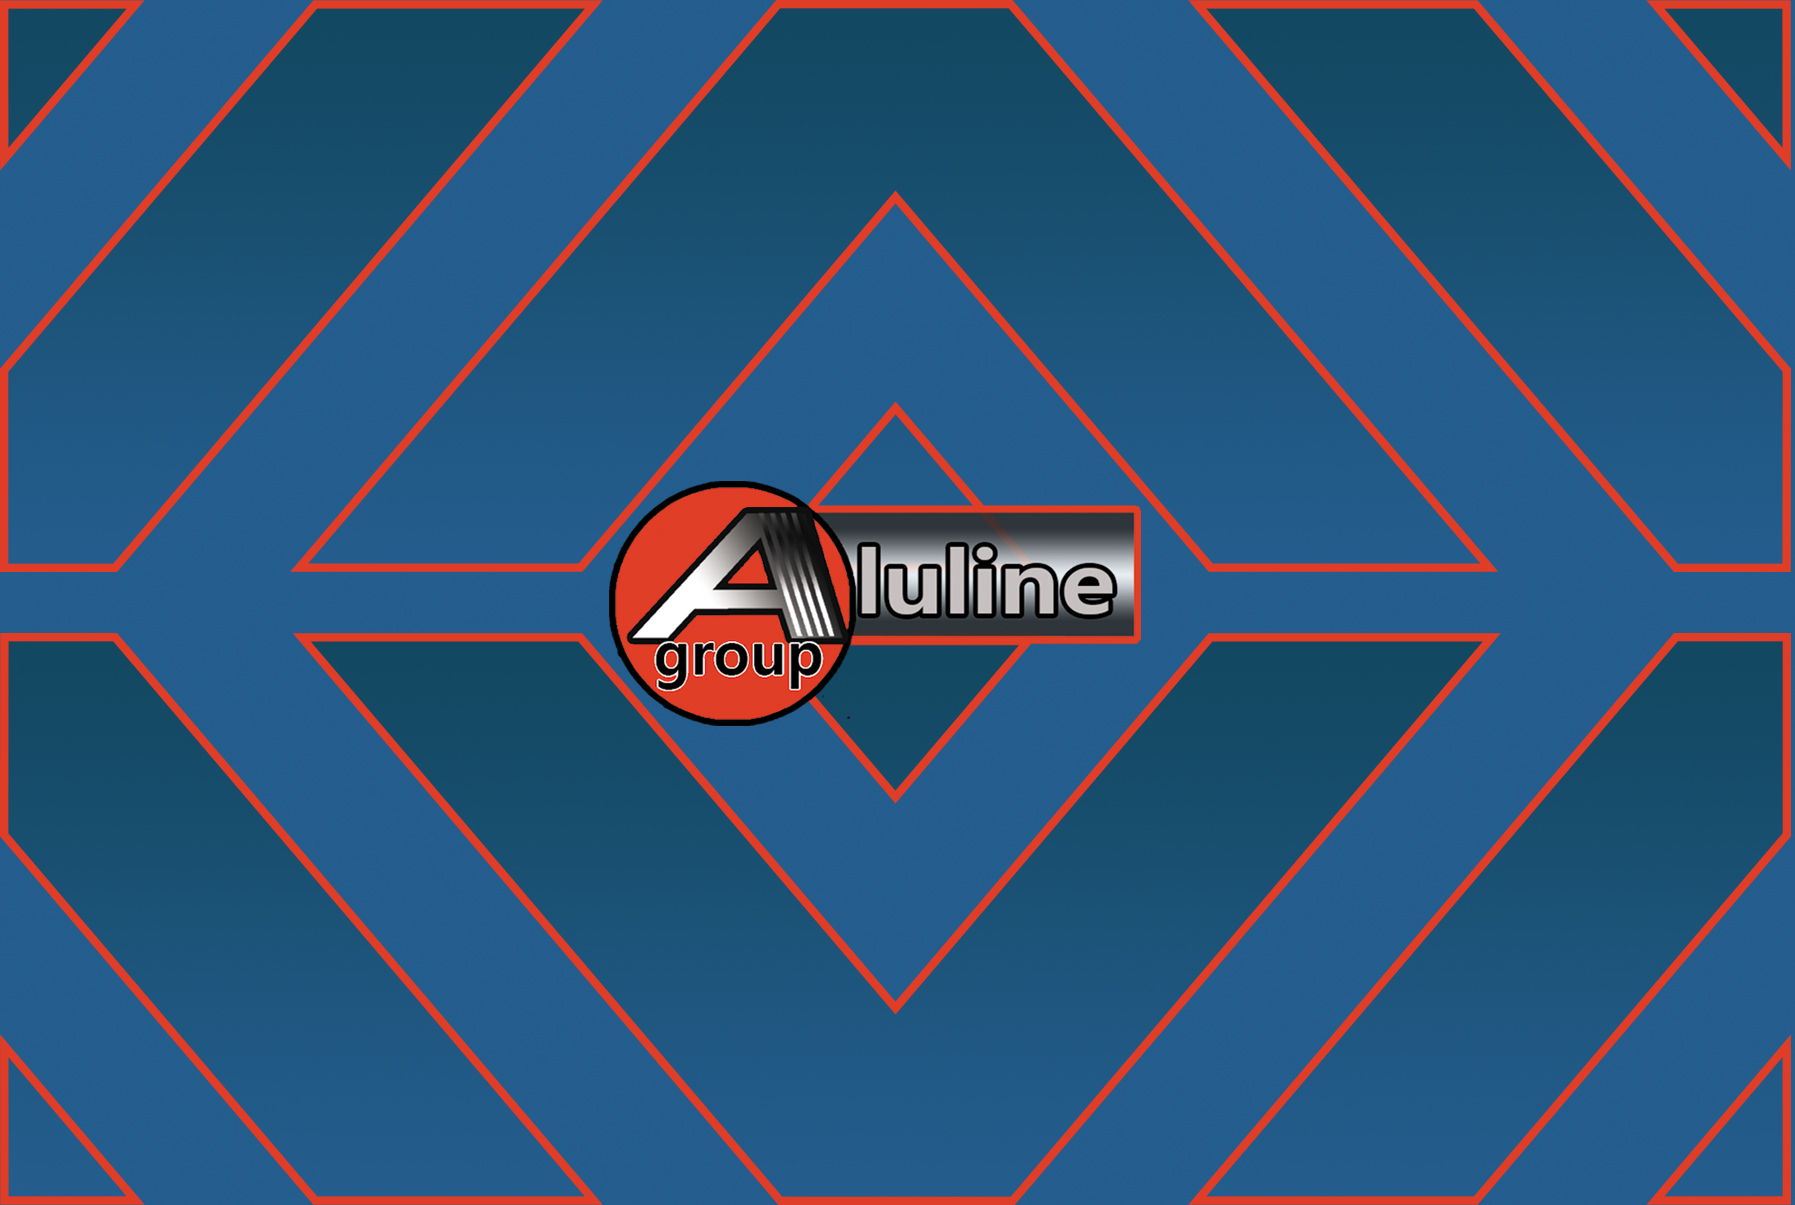 Aluline group